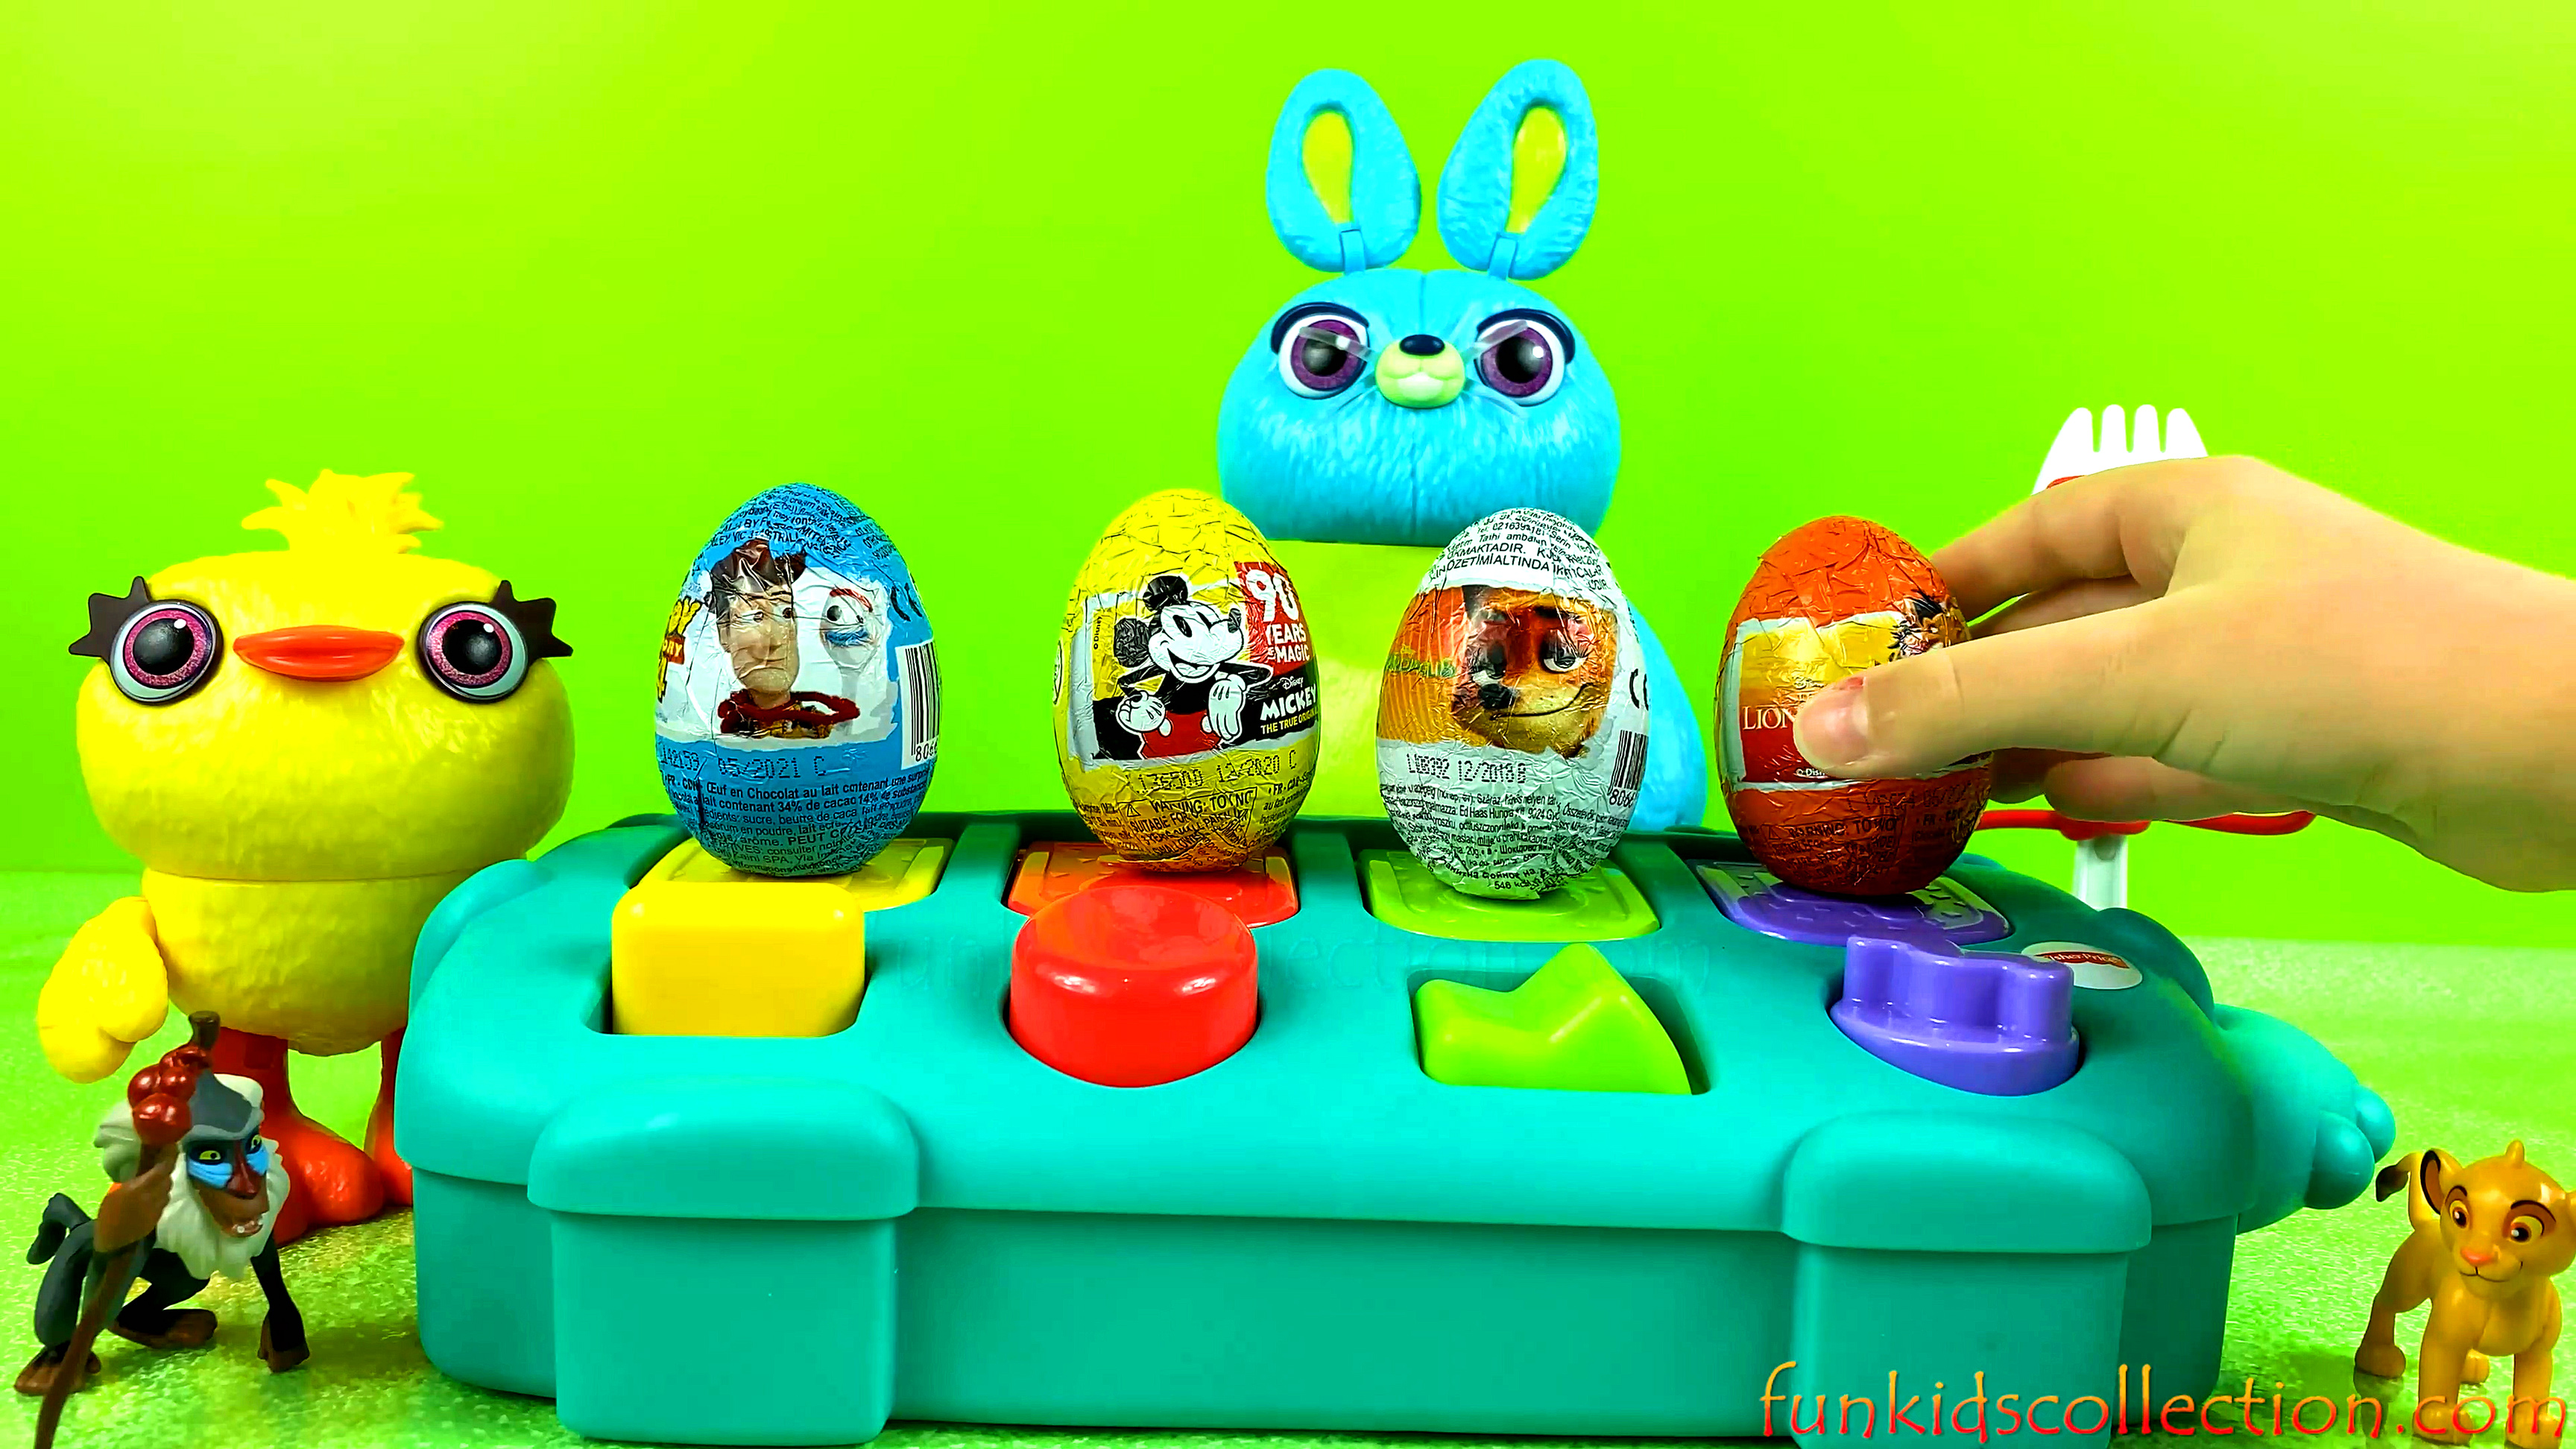 Pop Up Animals Egg Surprises Zaini | Lion King Egg Surprise Toy Story 4 Egg Surprise Mickey Egg Surp